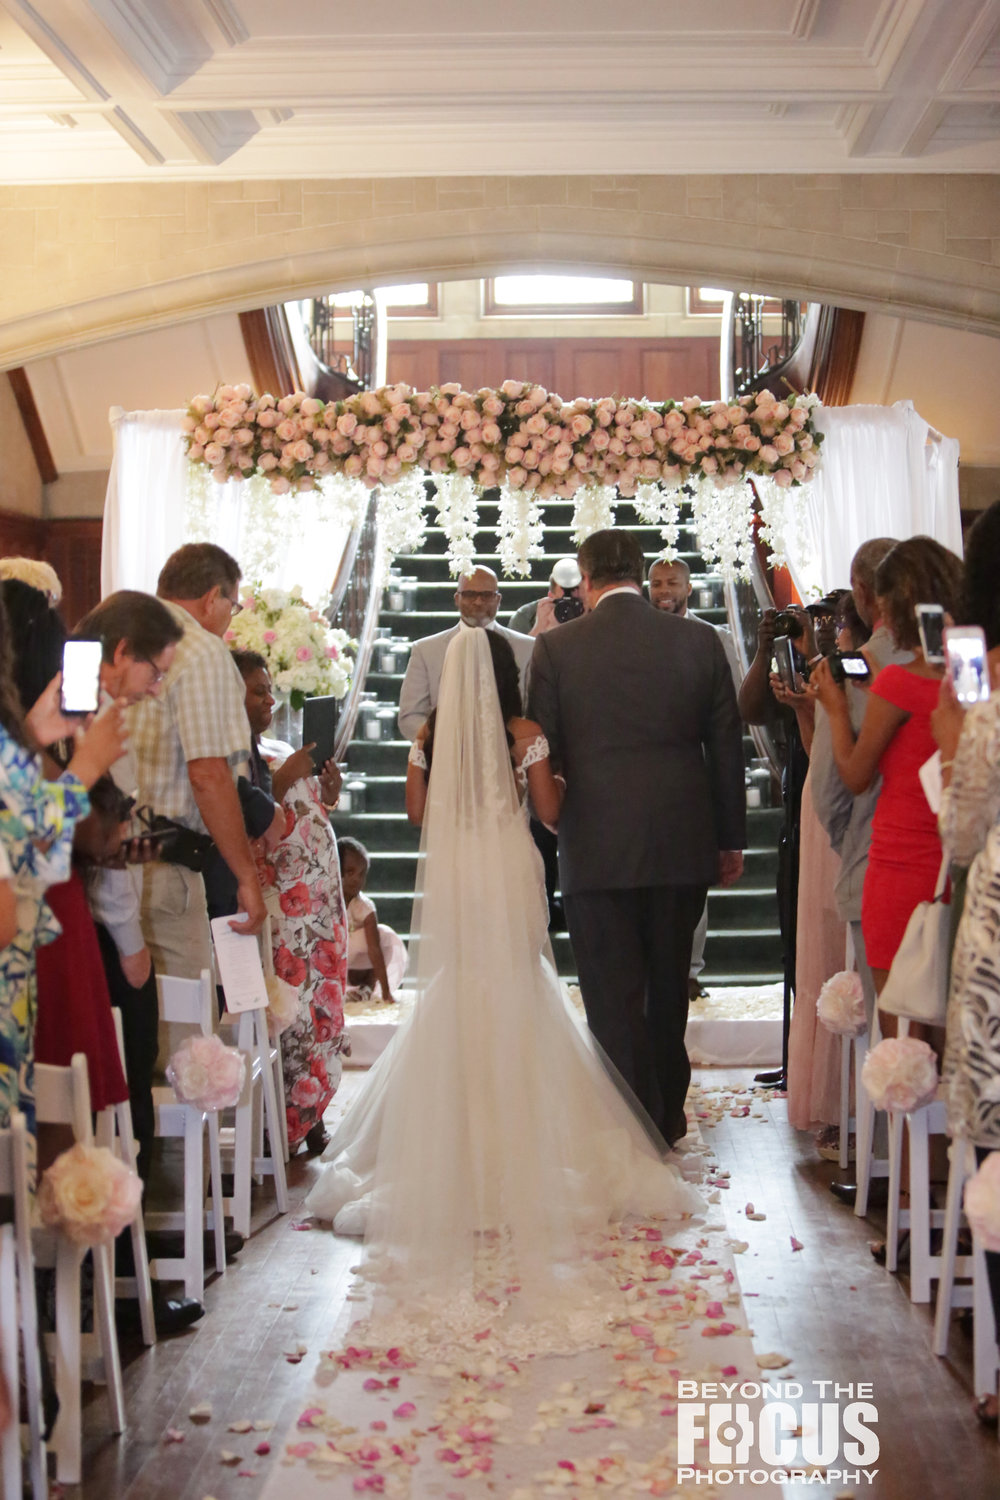 Christan_Imani_WeddingCeremony_W_12.jpg